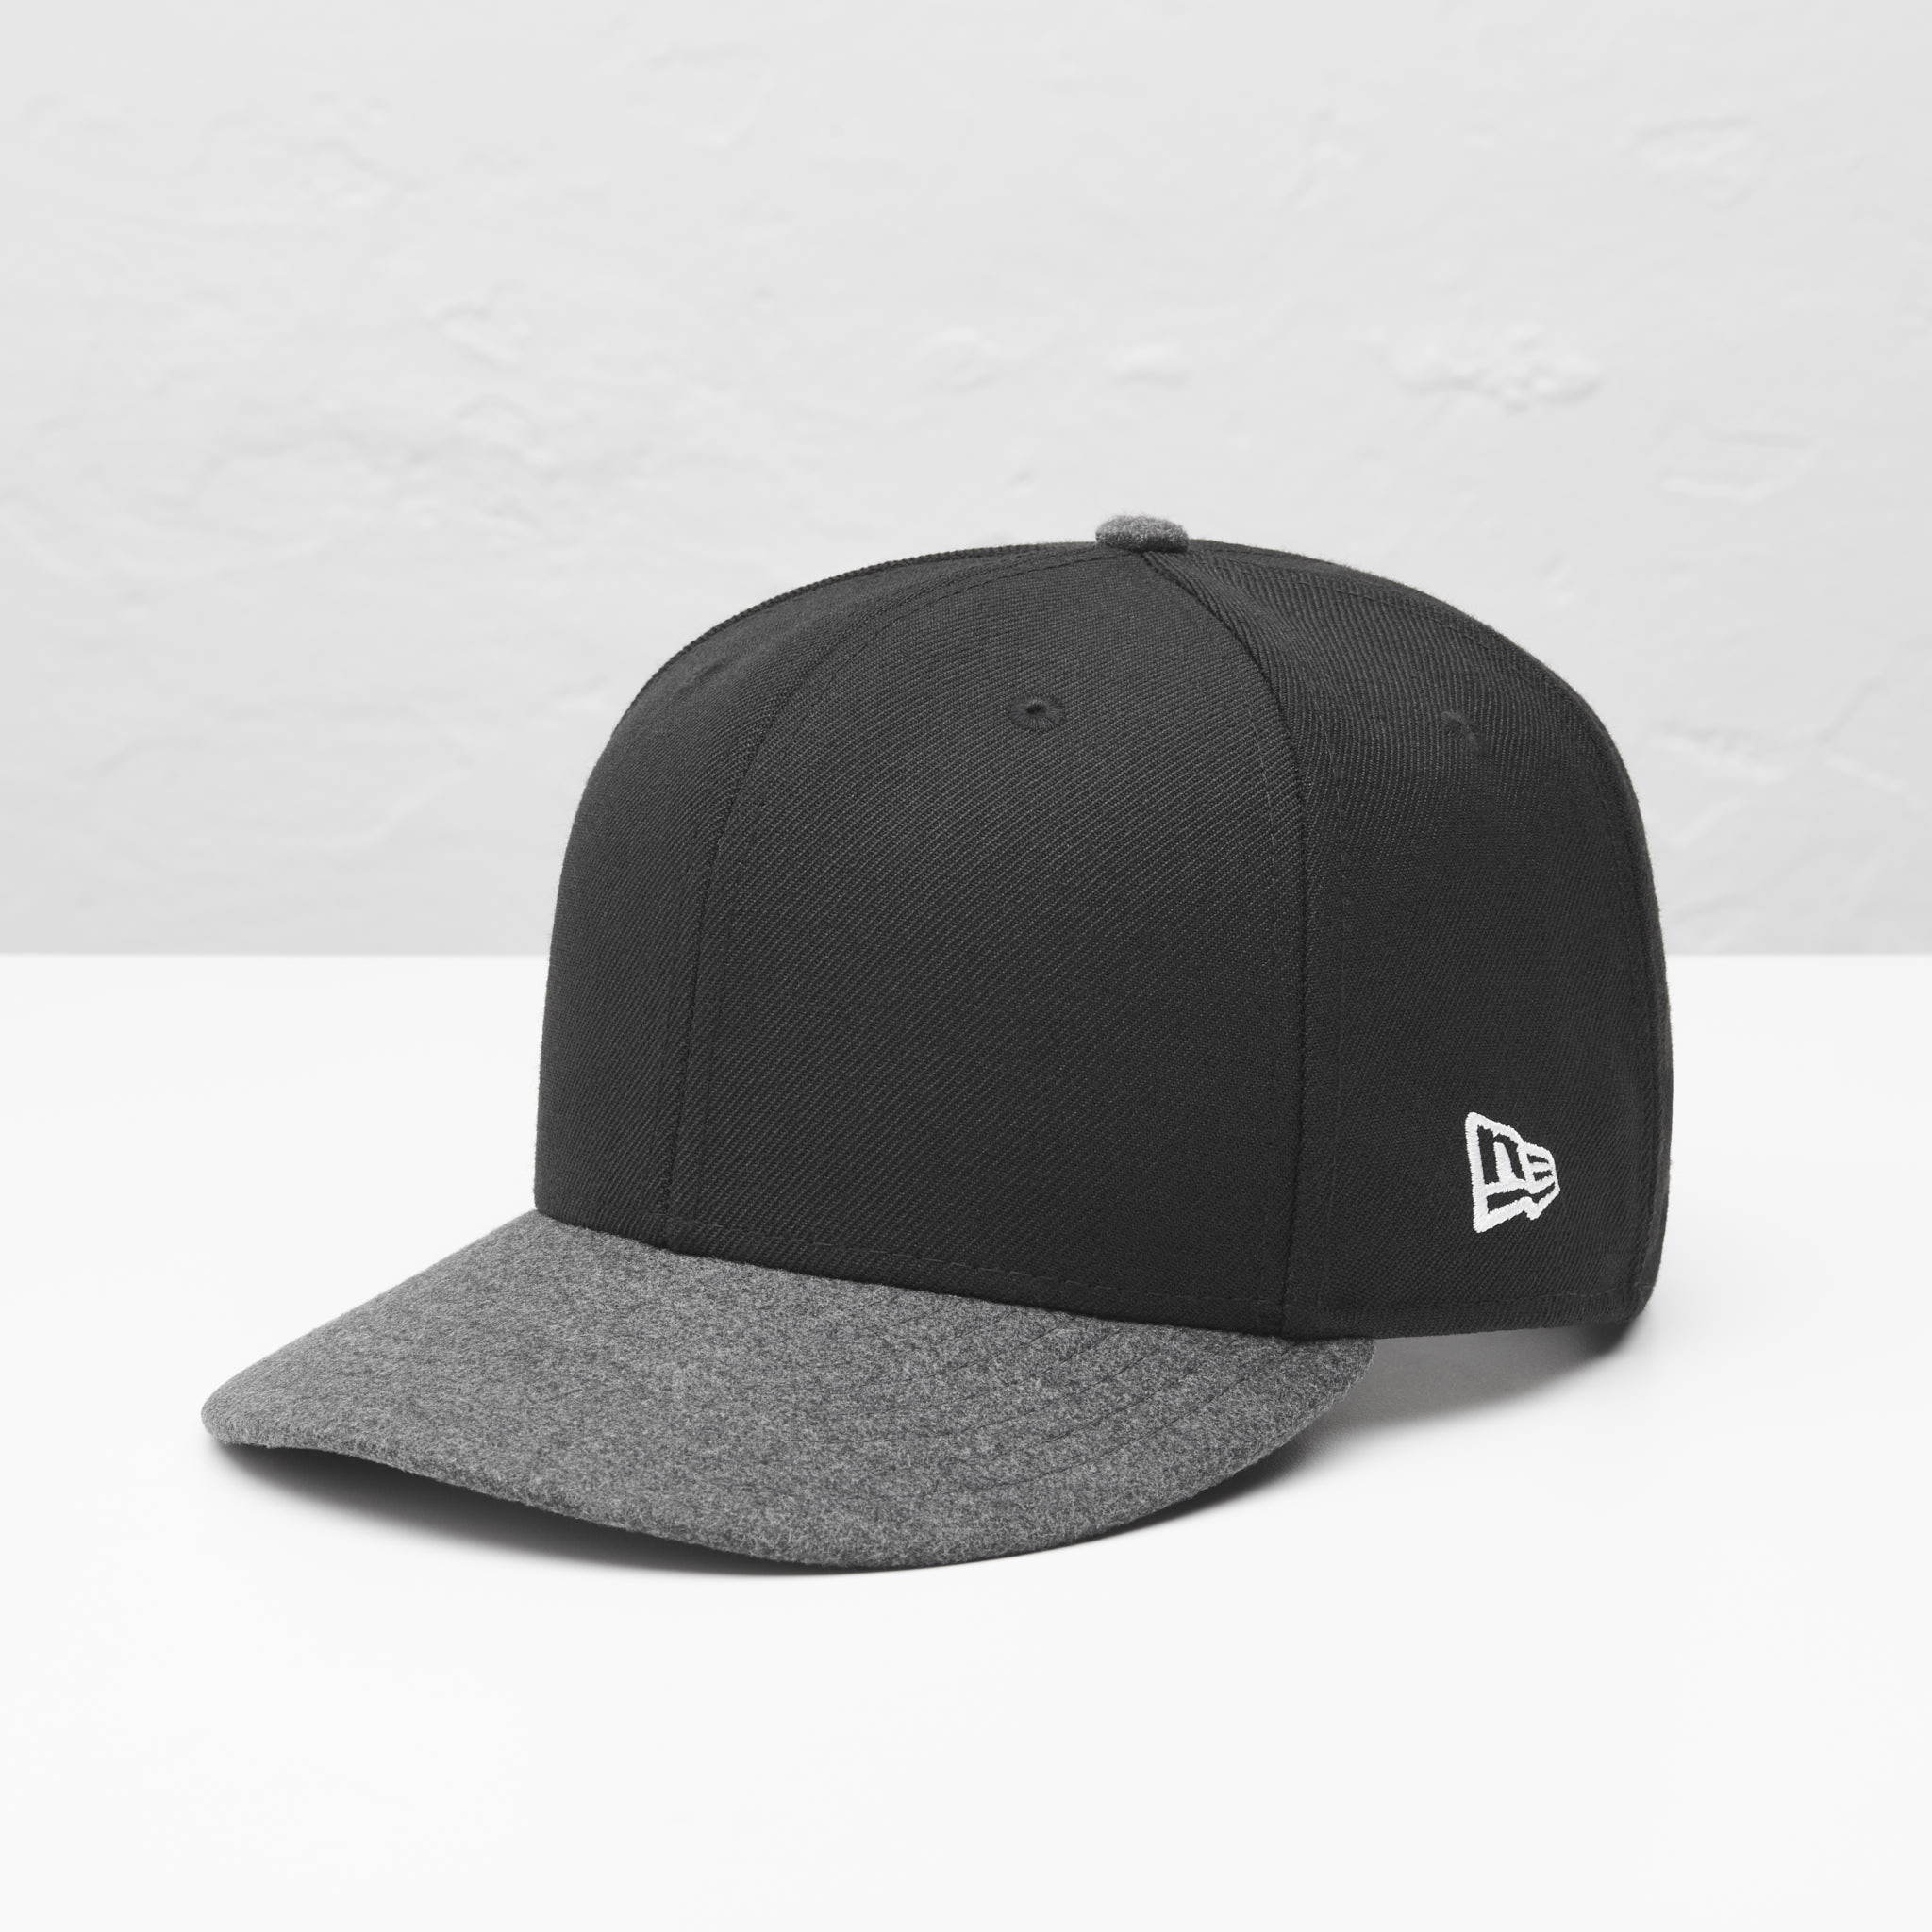 the best attitude 34253 486f7 Two Iconic Streetwear Brands, New Era and New Balance Launch ...